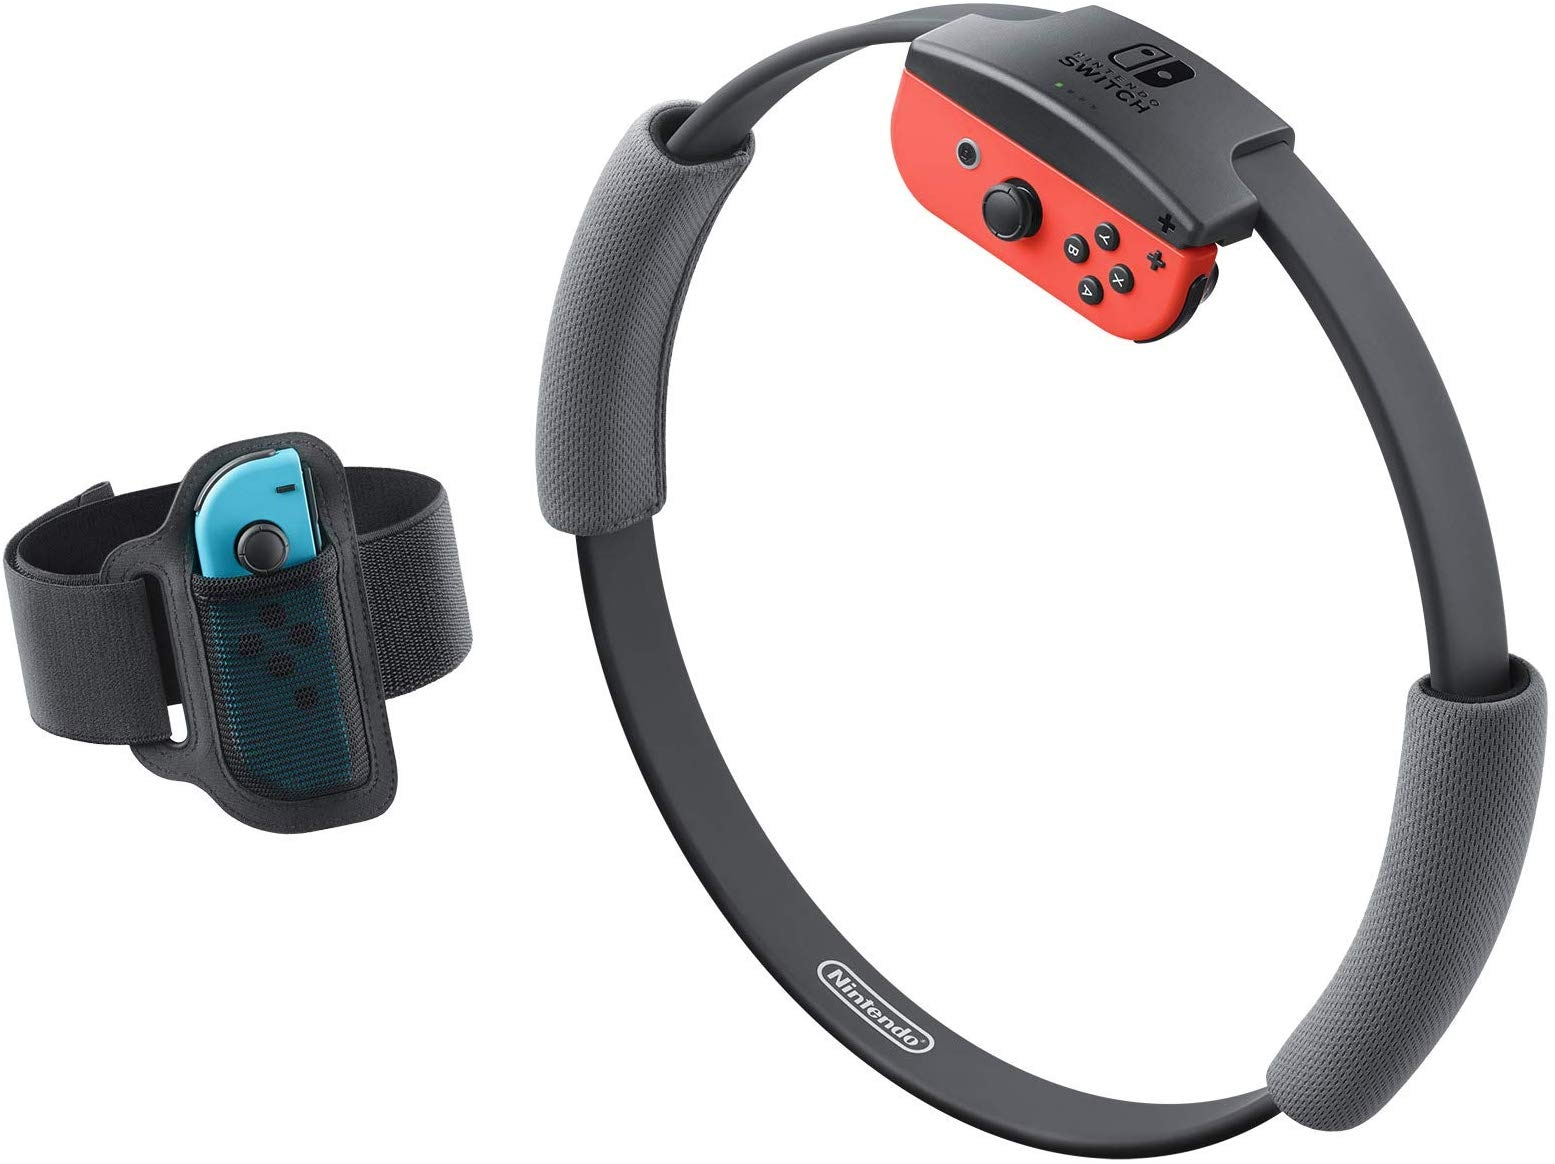 Nintendo Switch without Games Fitness Ring Adventure Ring Fit Exercise Yoga Ring+Leg Band - 2